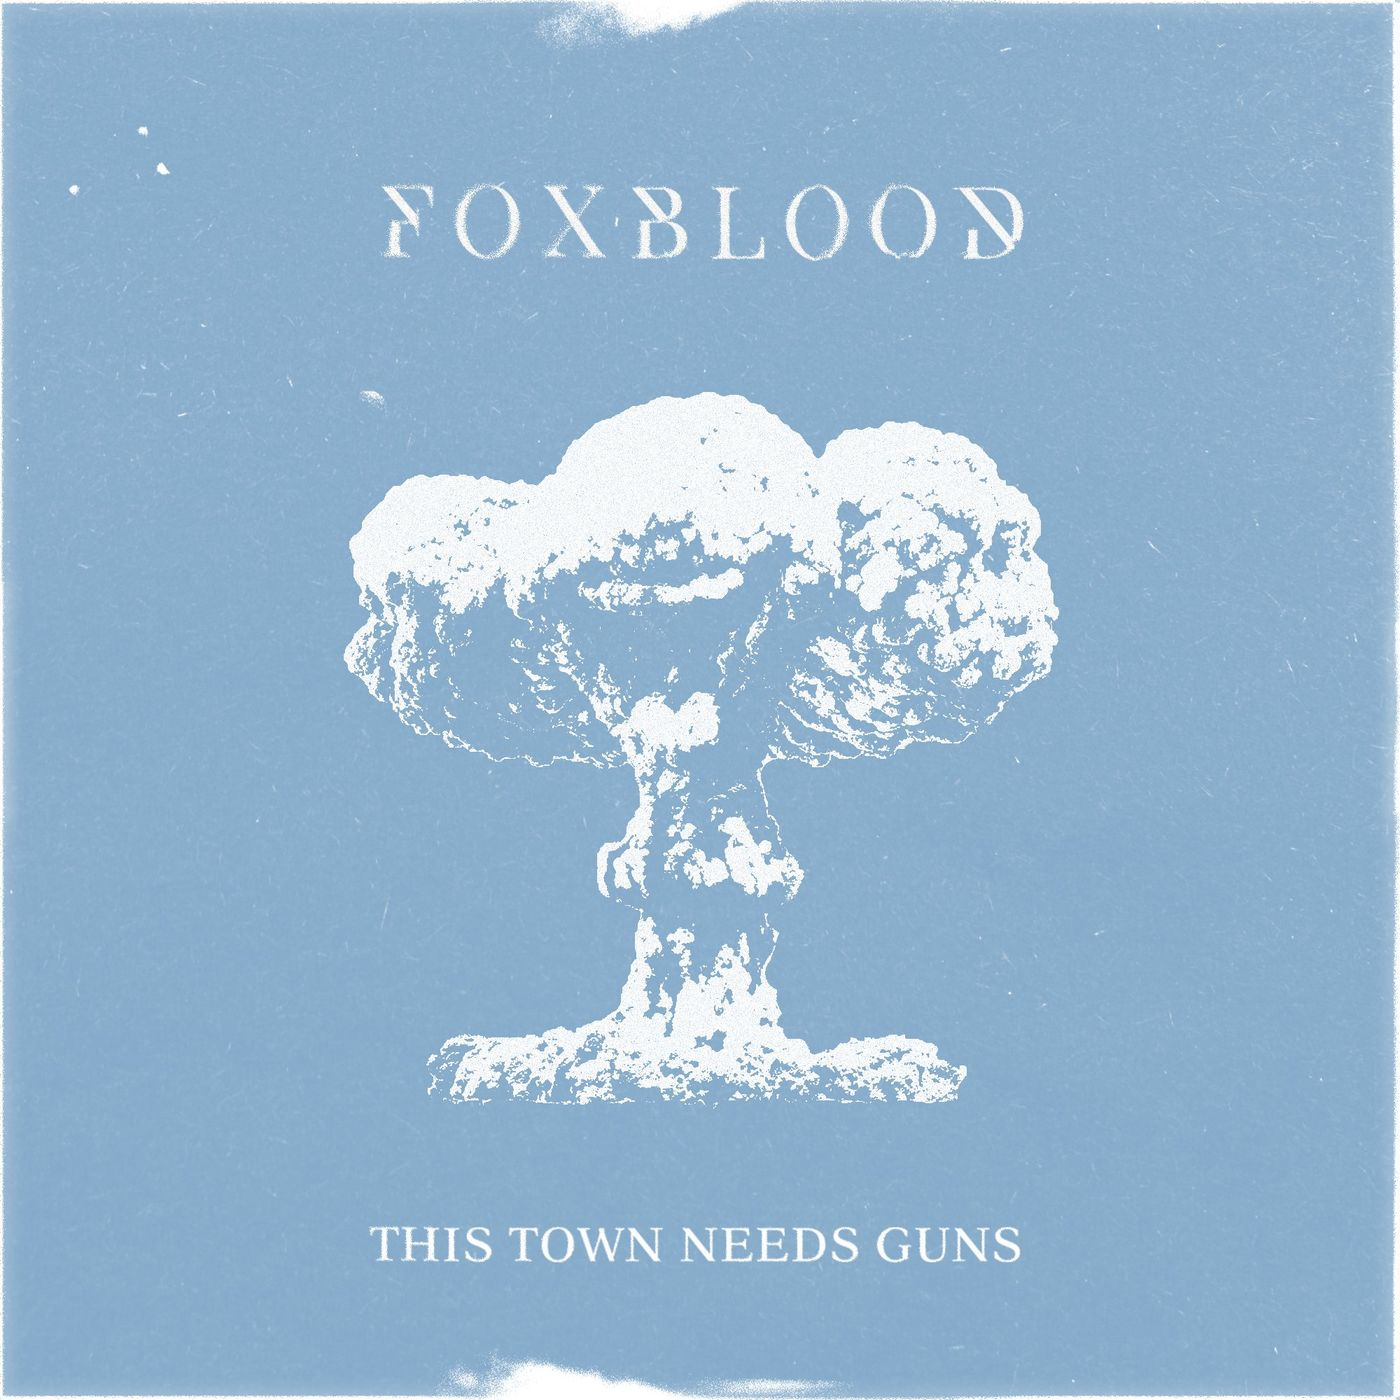 Foxblood - This Town Needs Guns [single] (2021)